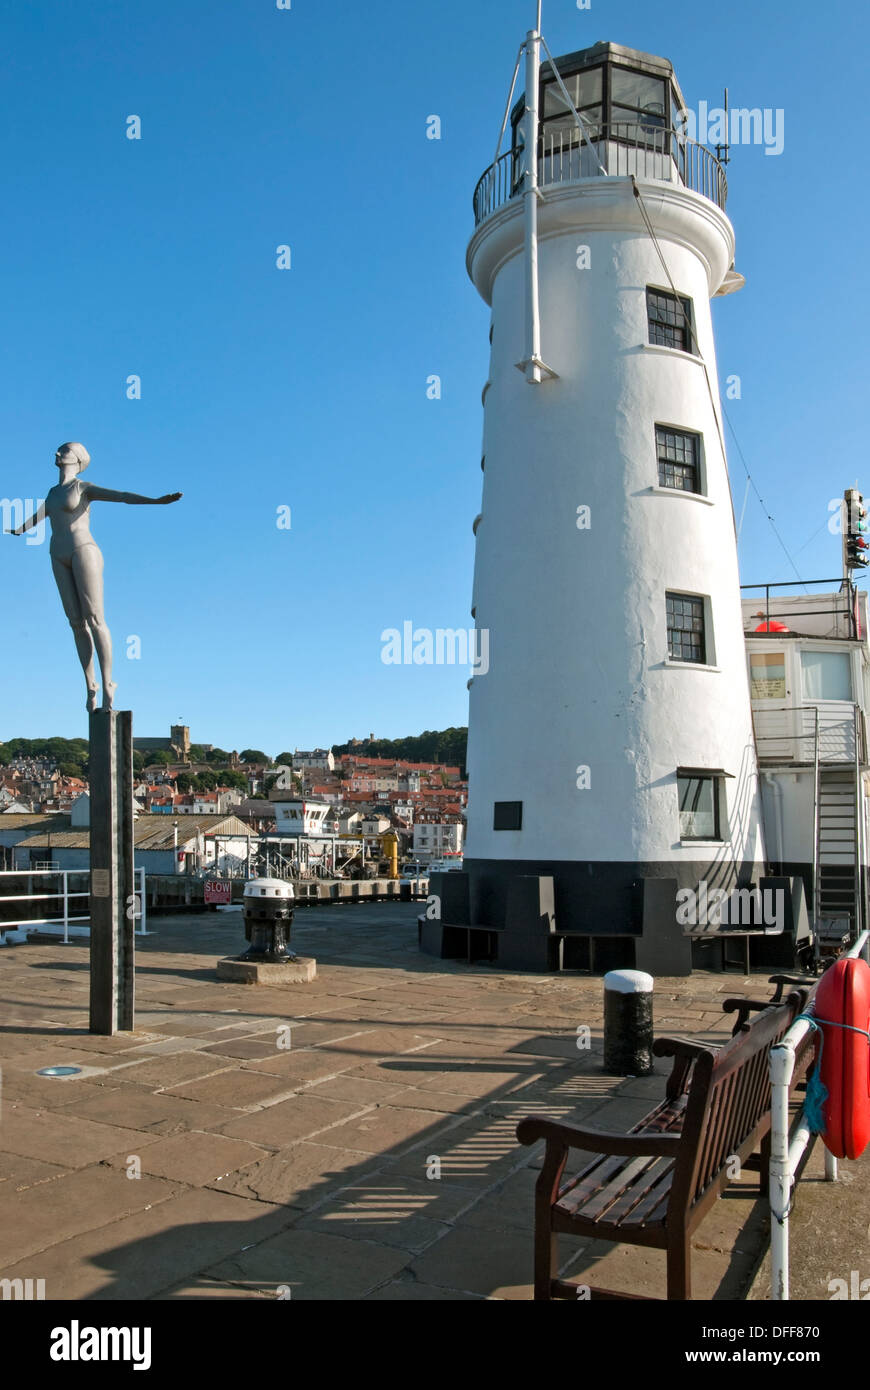 The Diving Belle Sculpture next to the Lighthouse at the harbour of Scarborough, North Yorkshire in England. - Stock Image